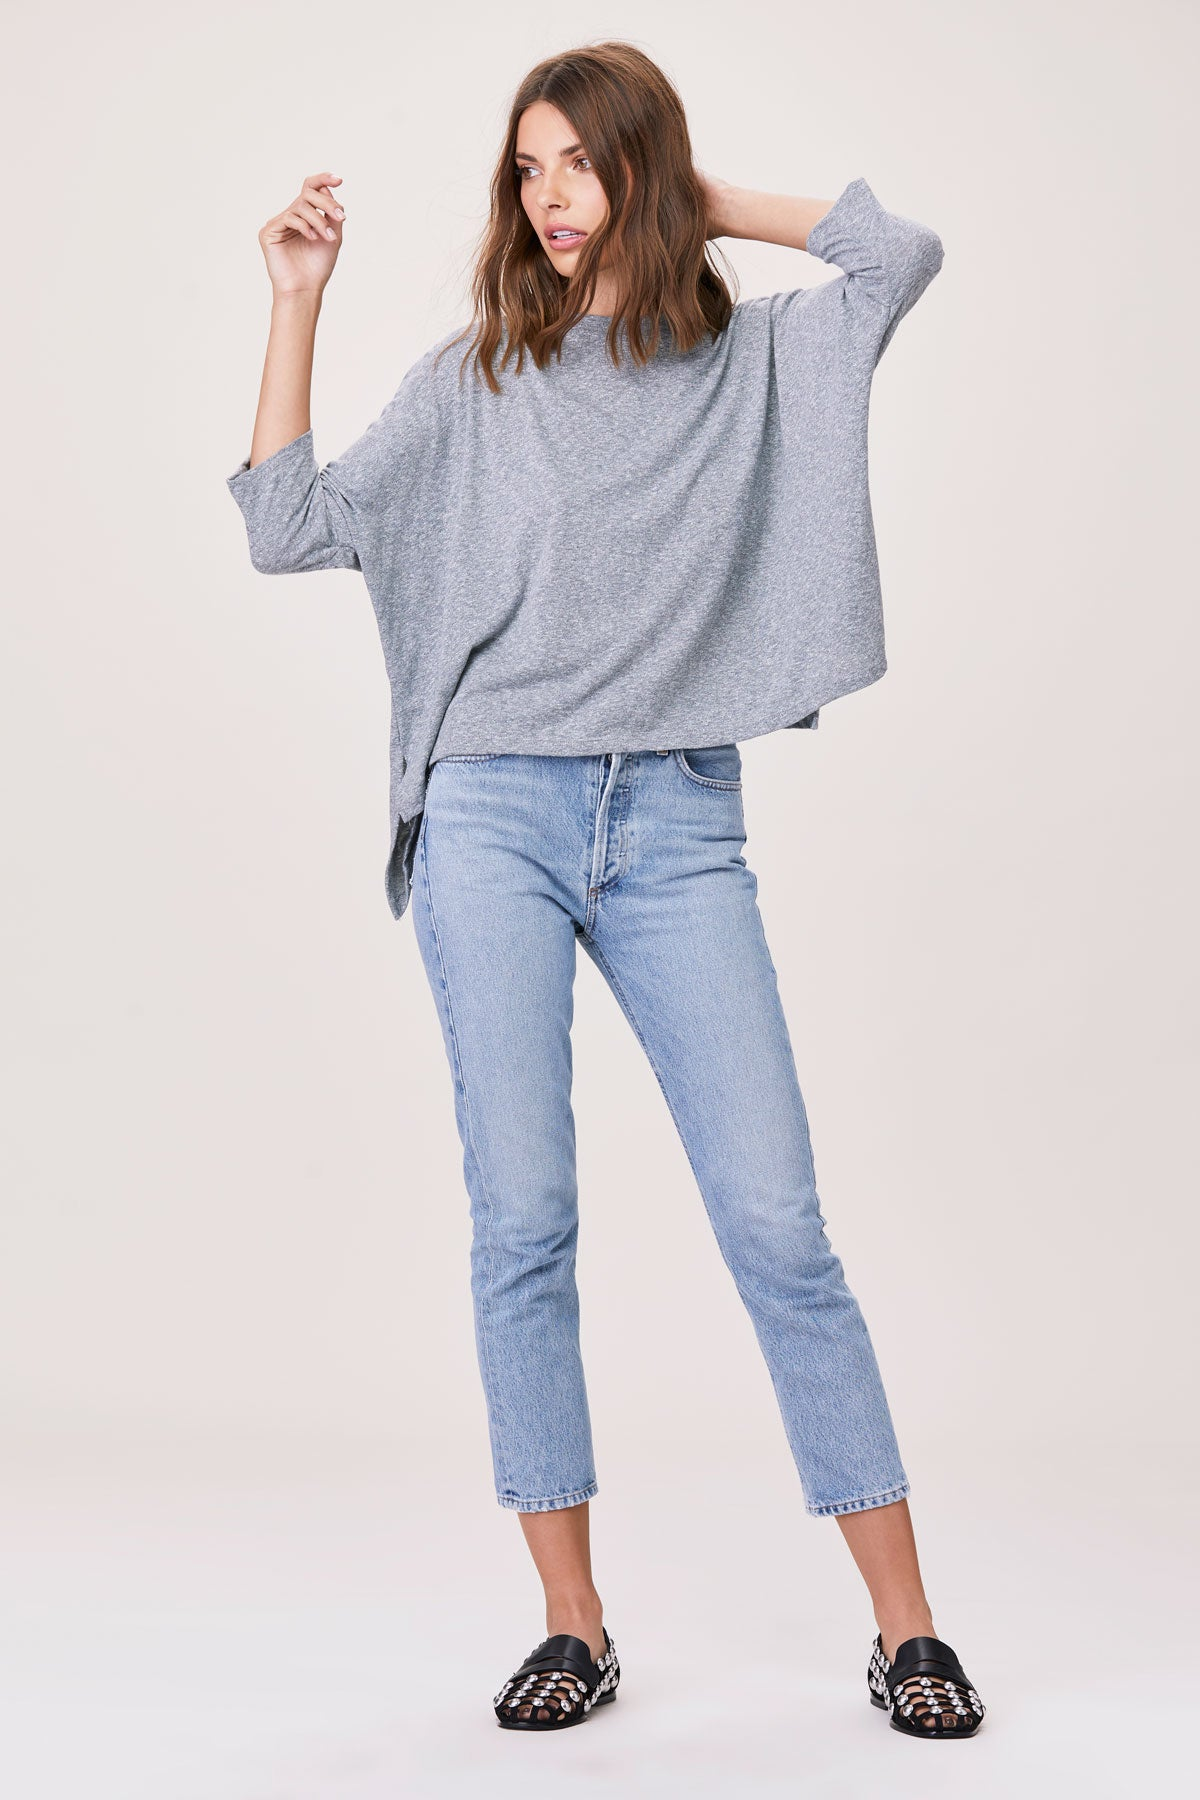 LNA Essential Cape Tee in Grey Tri Blend Cotton